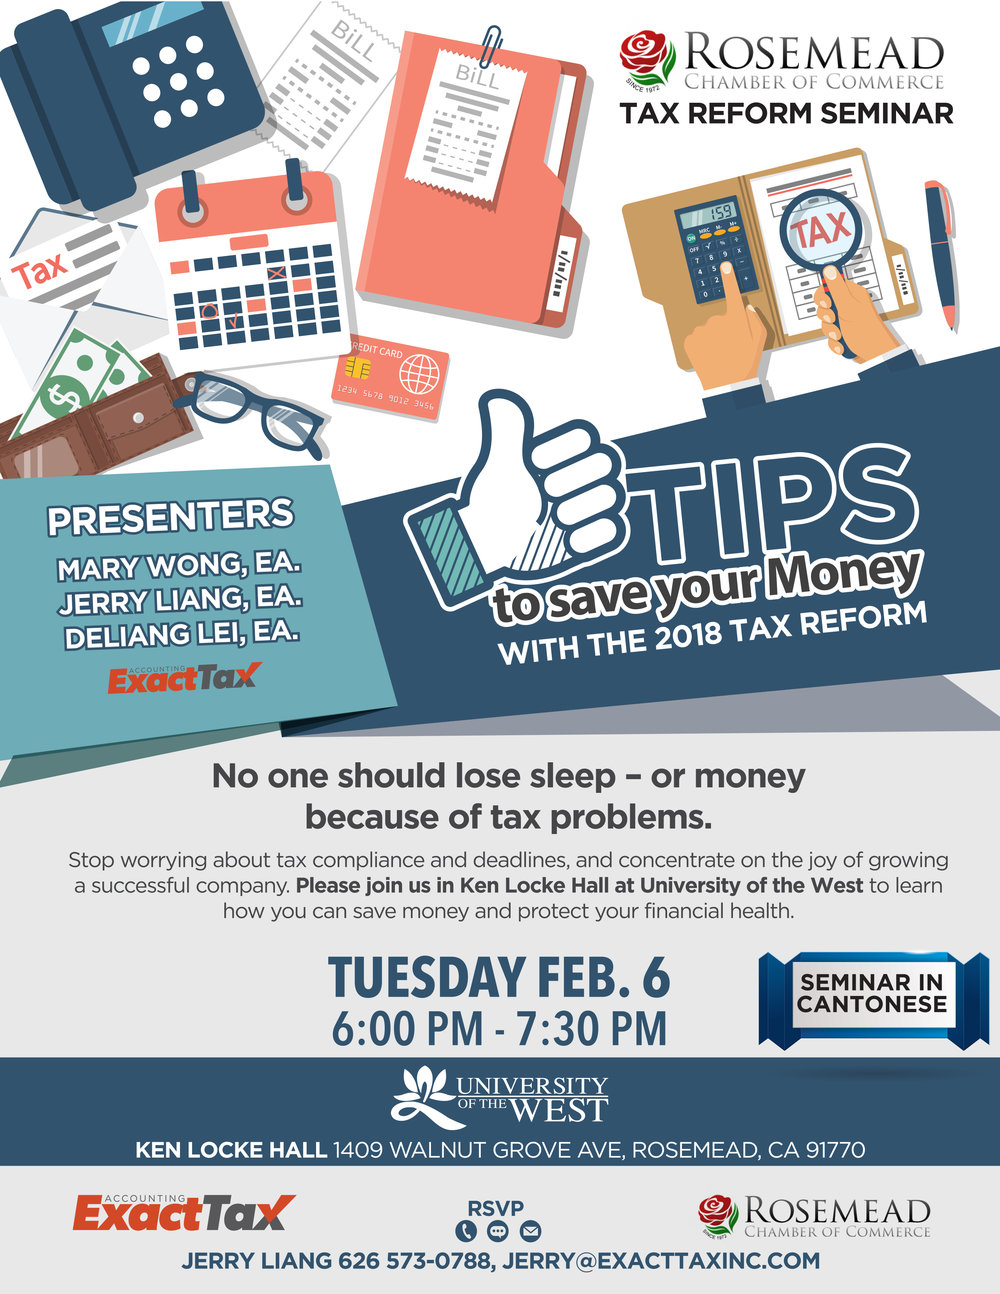 Tax Reform Seminar-Cantonese - February 6th, 2018